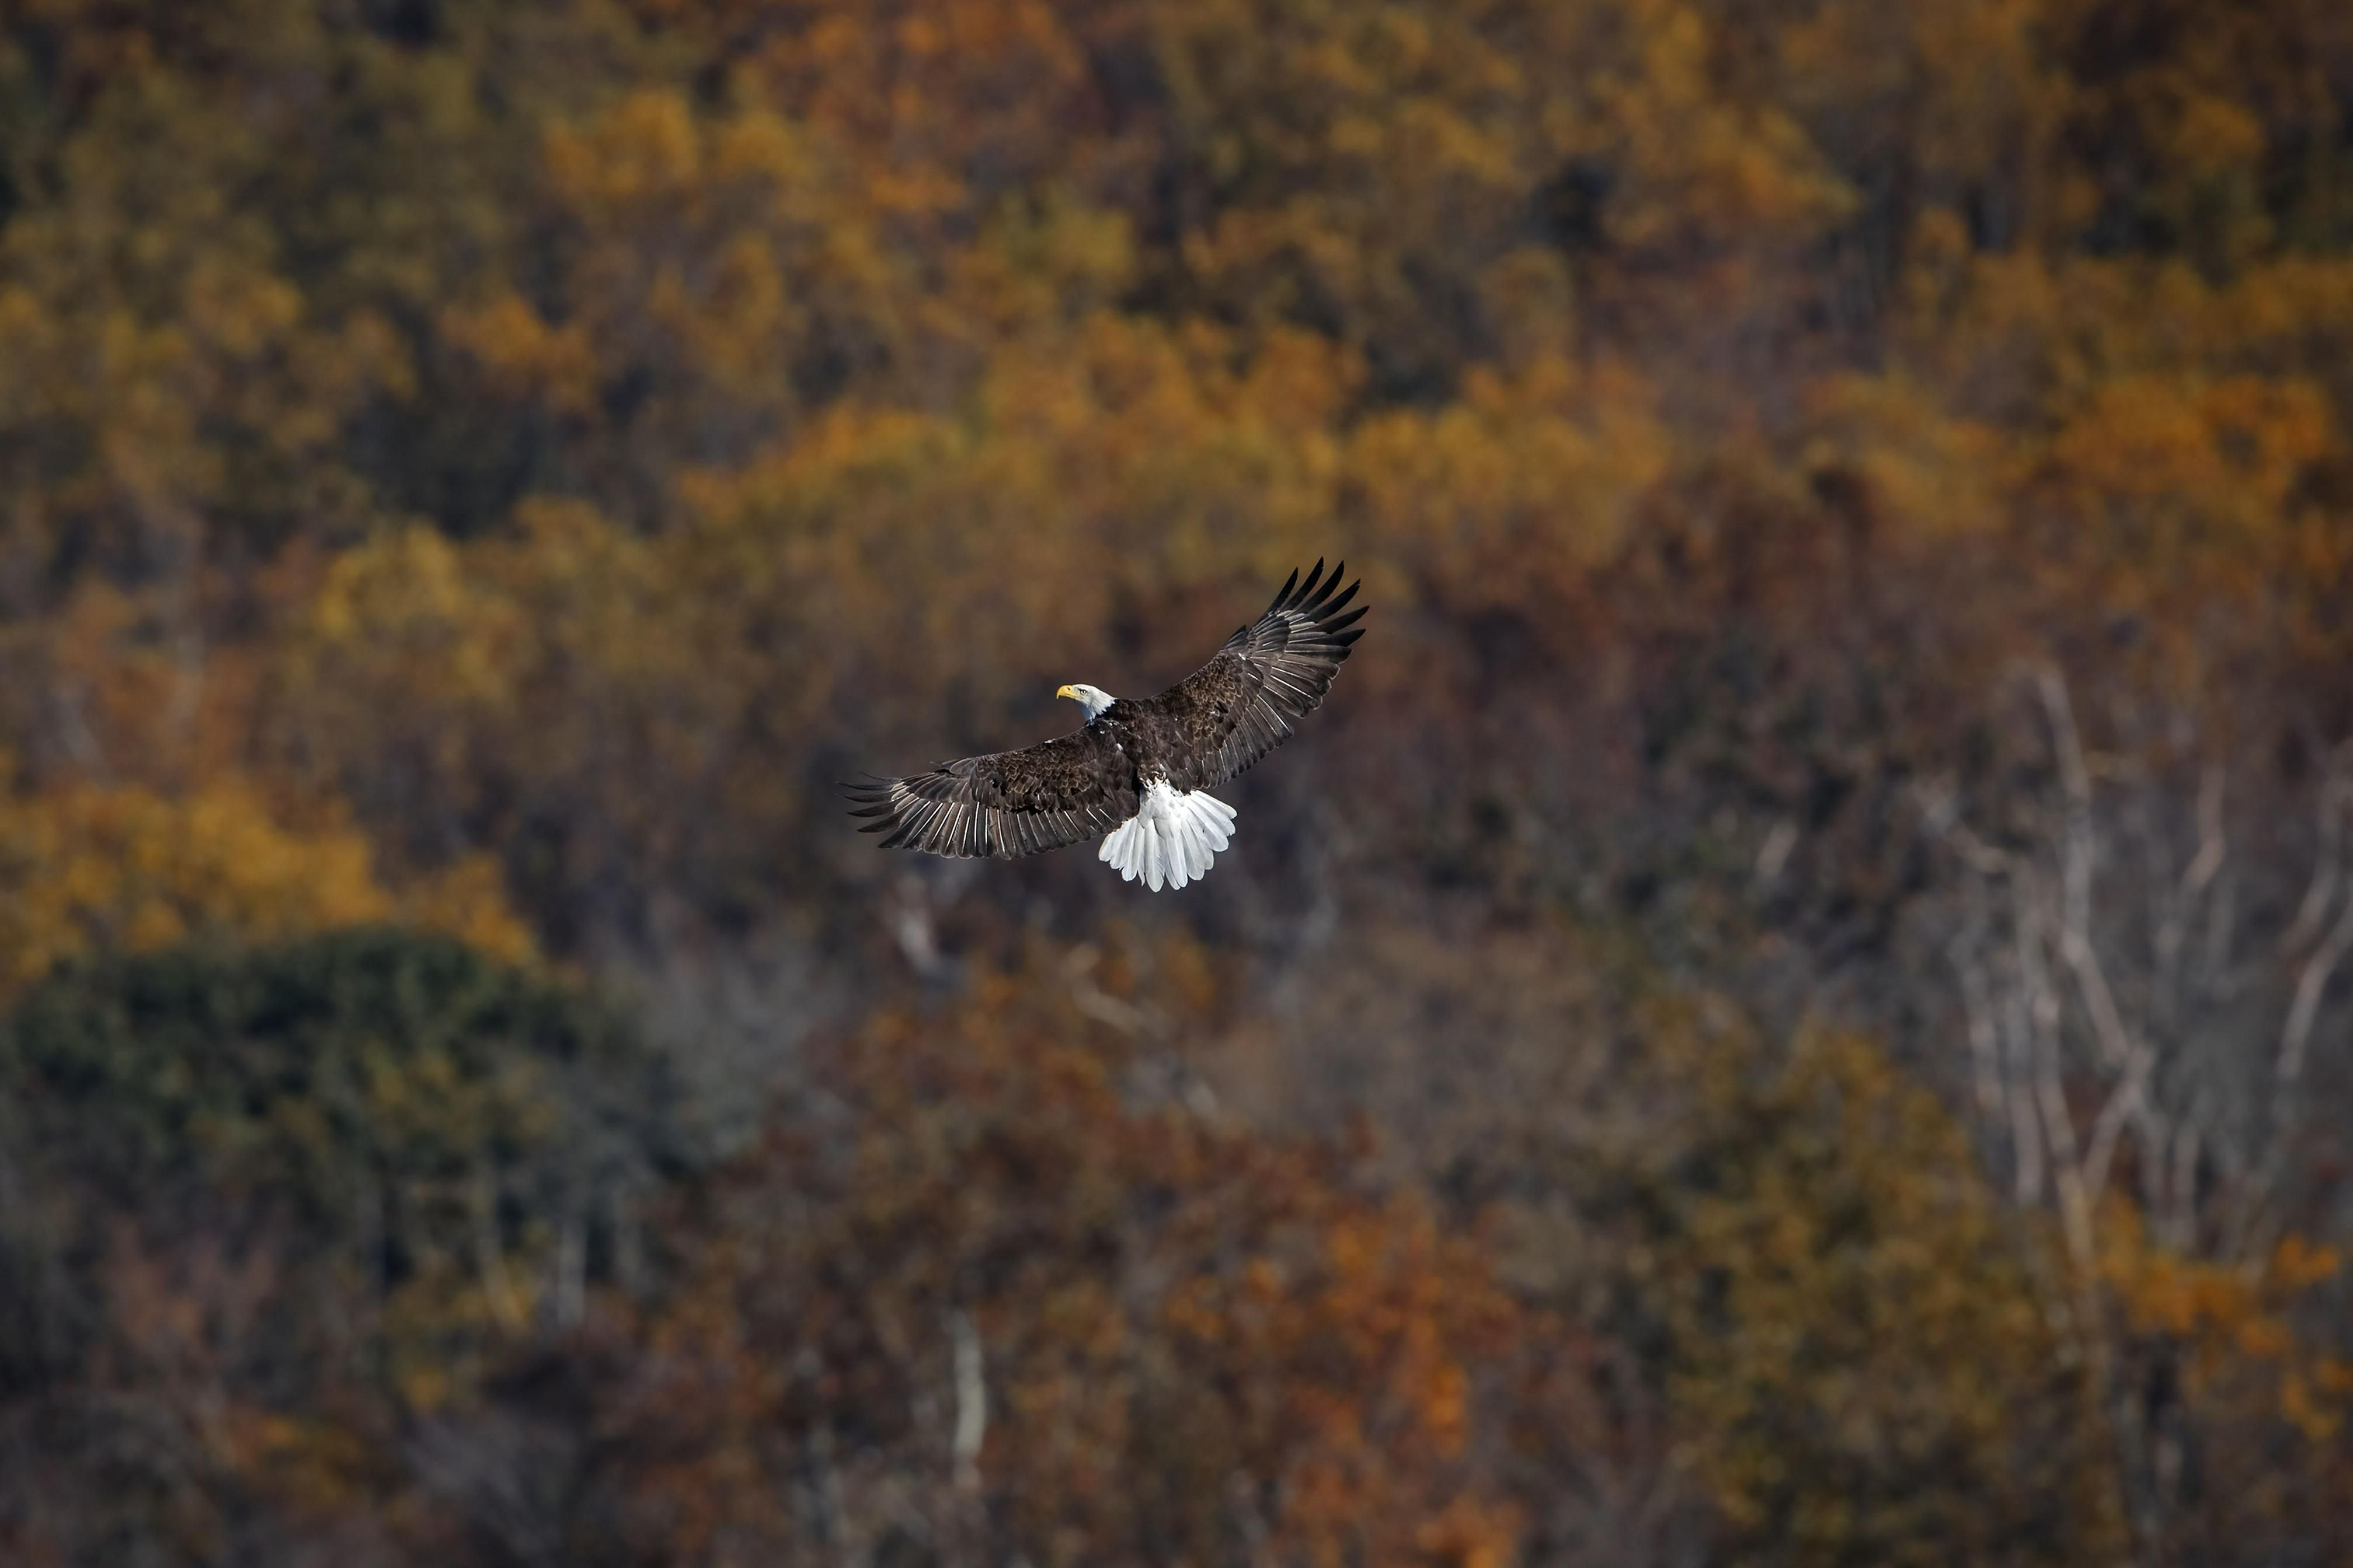 A bald eagle is flying over a forest.